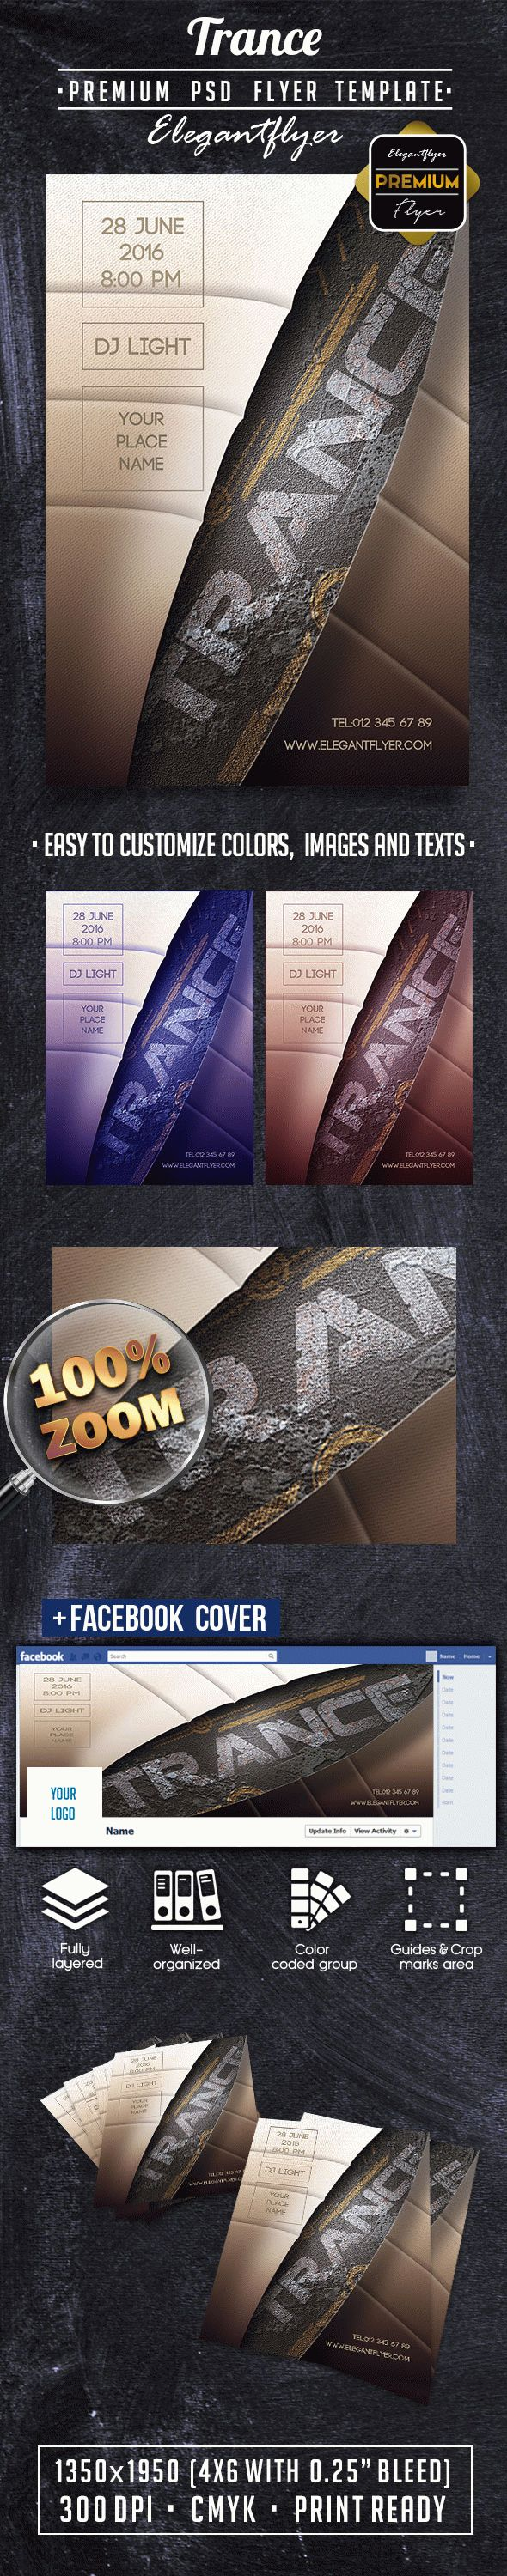 Trance PREMIUM Flyer PSD Template + Facebook Cover